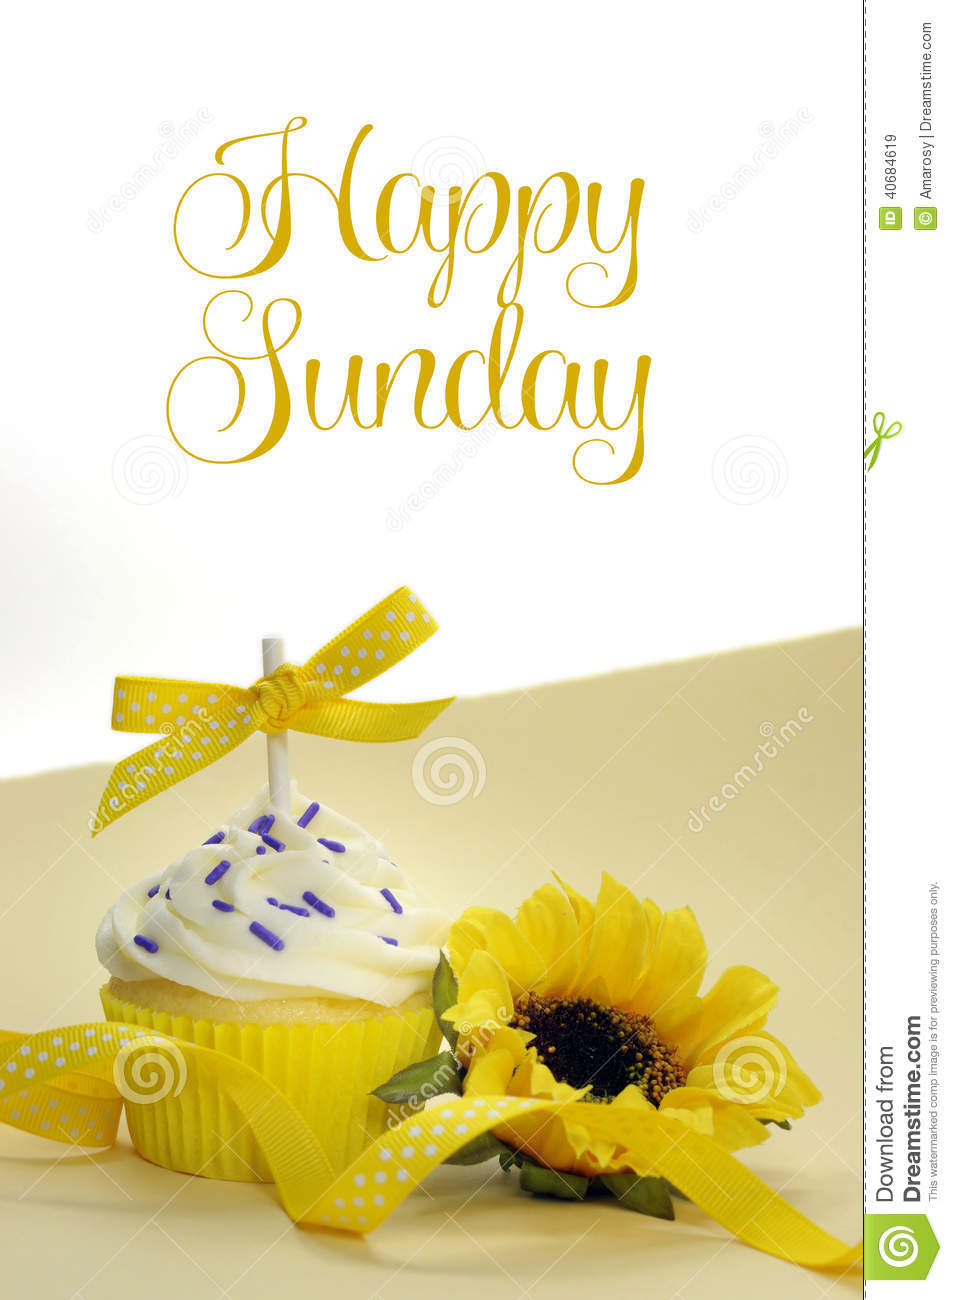 Yellow Theme Cupcake And Sunflower With Happy Sunday Stock Image